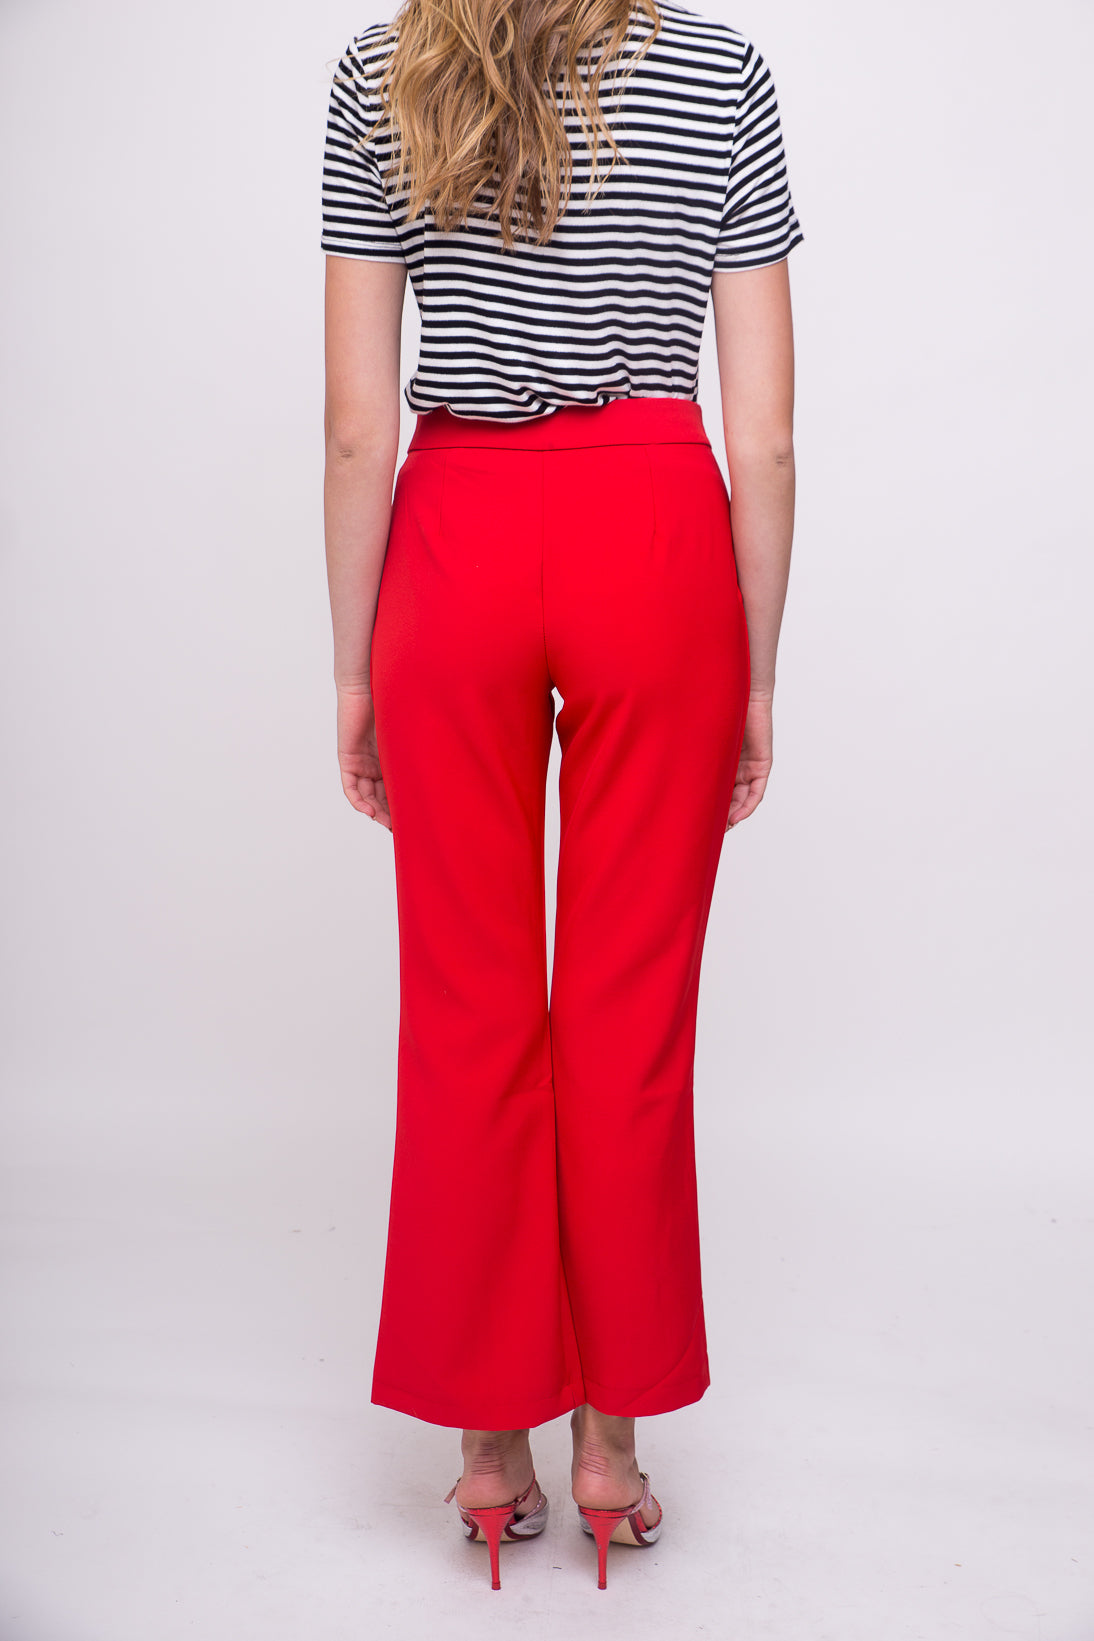 Hot red tailored dress pants.